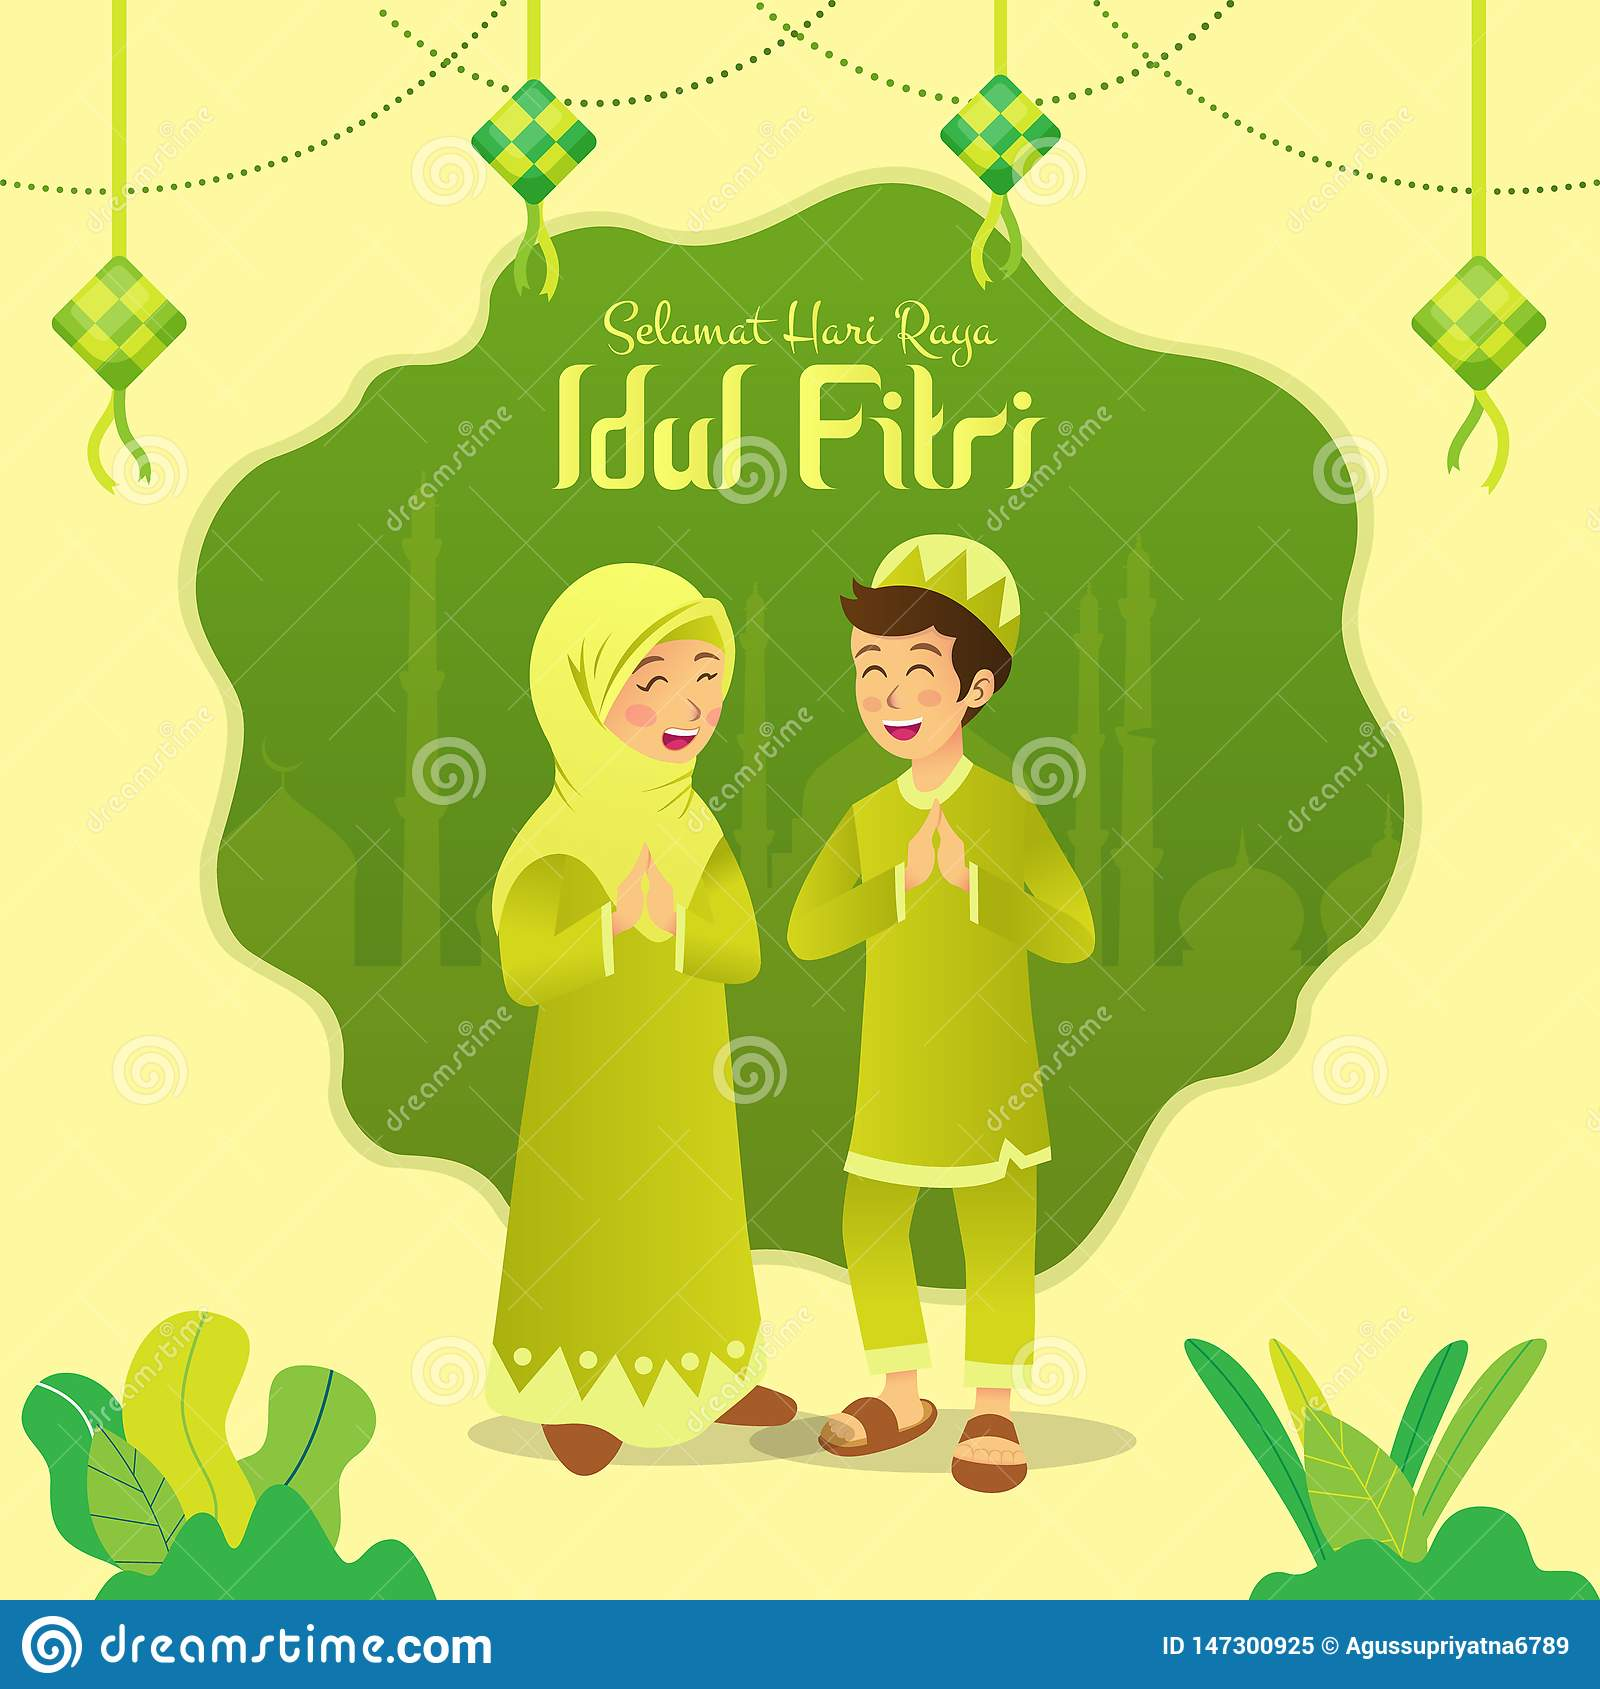 Selamat Hari Raya Idul Fitri Is Another Language Of Happy